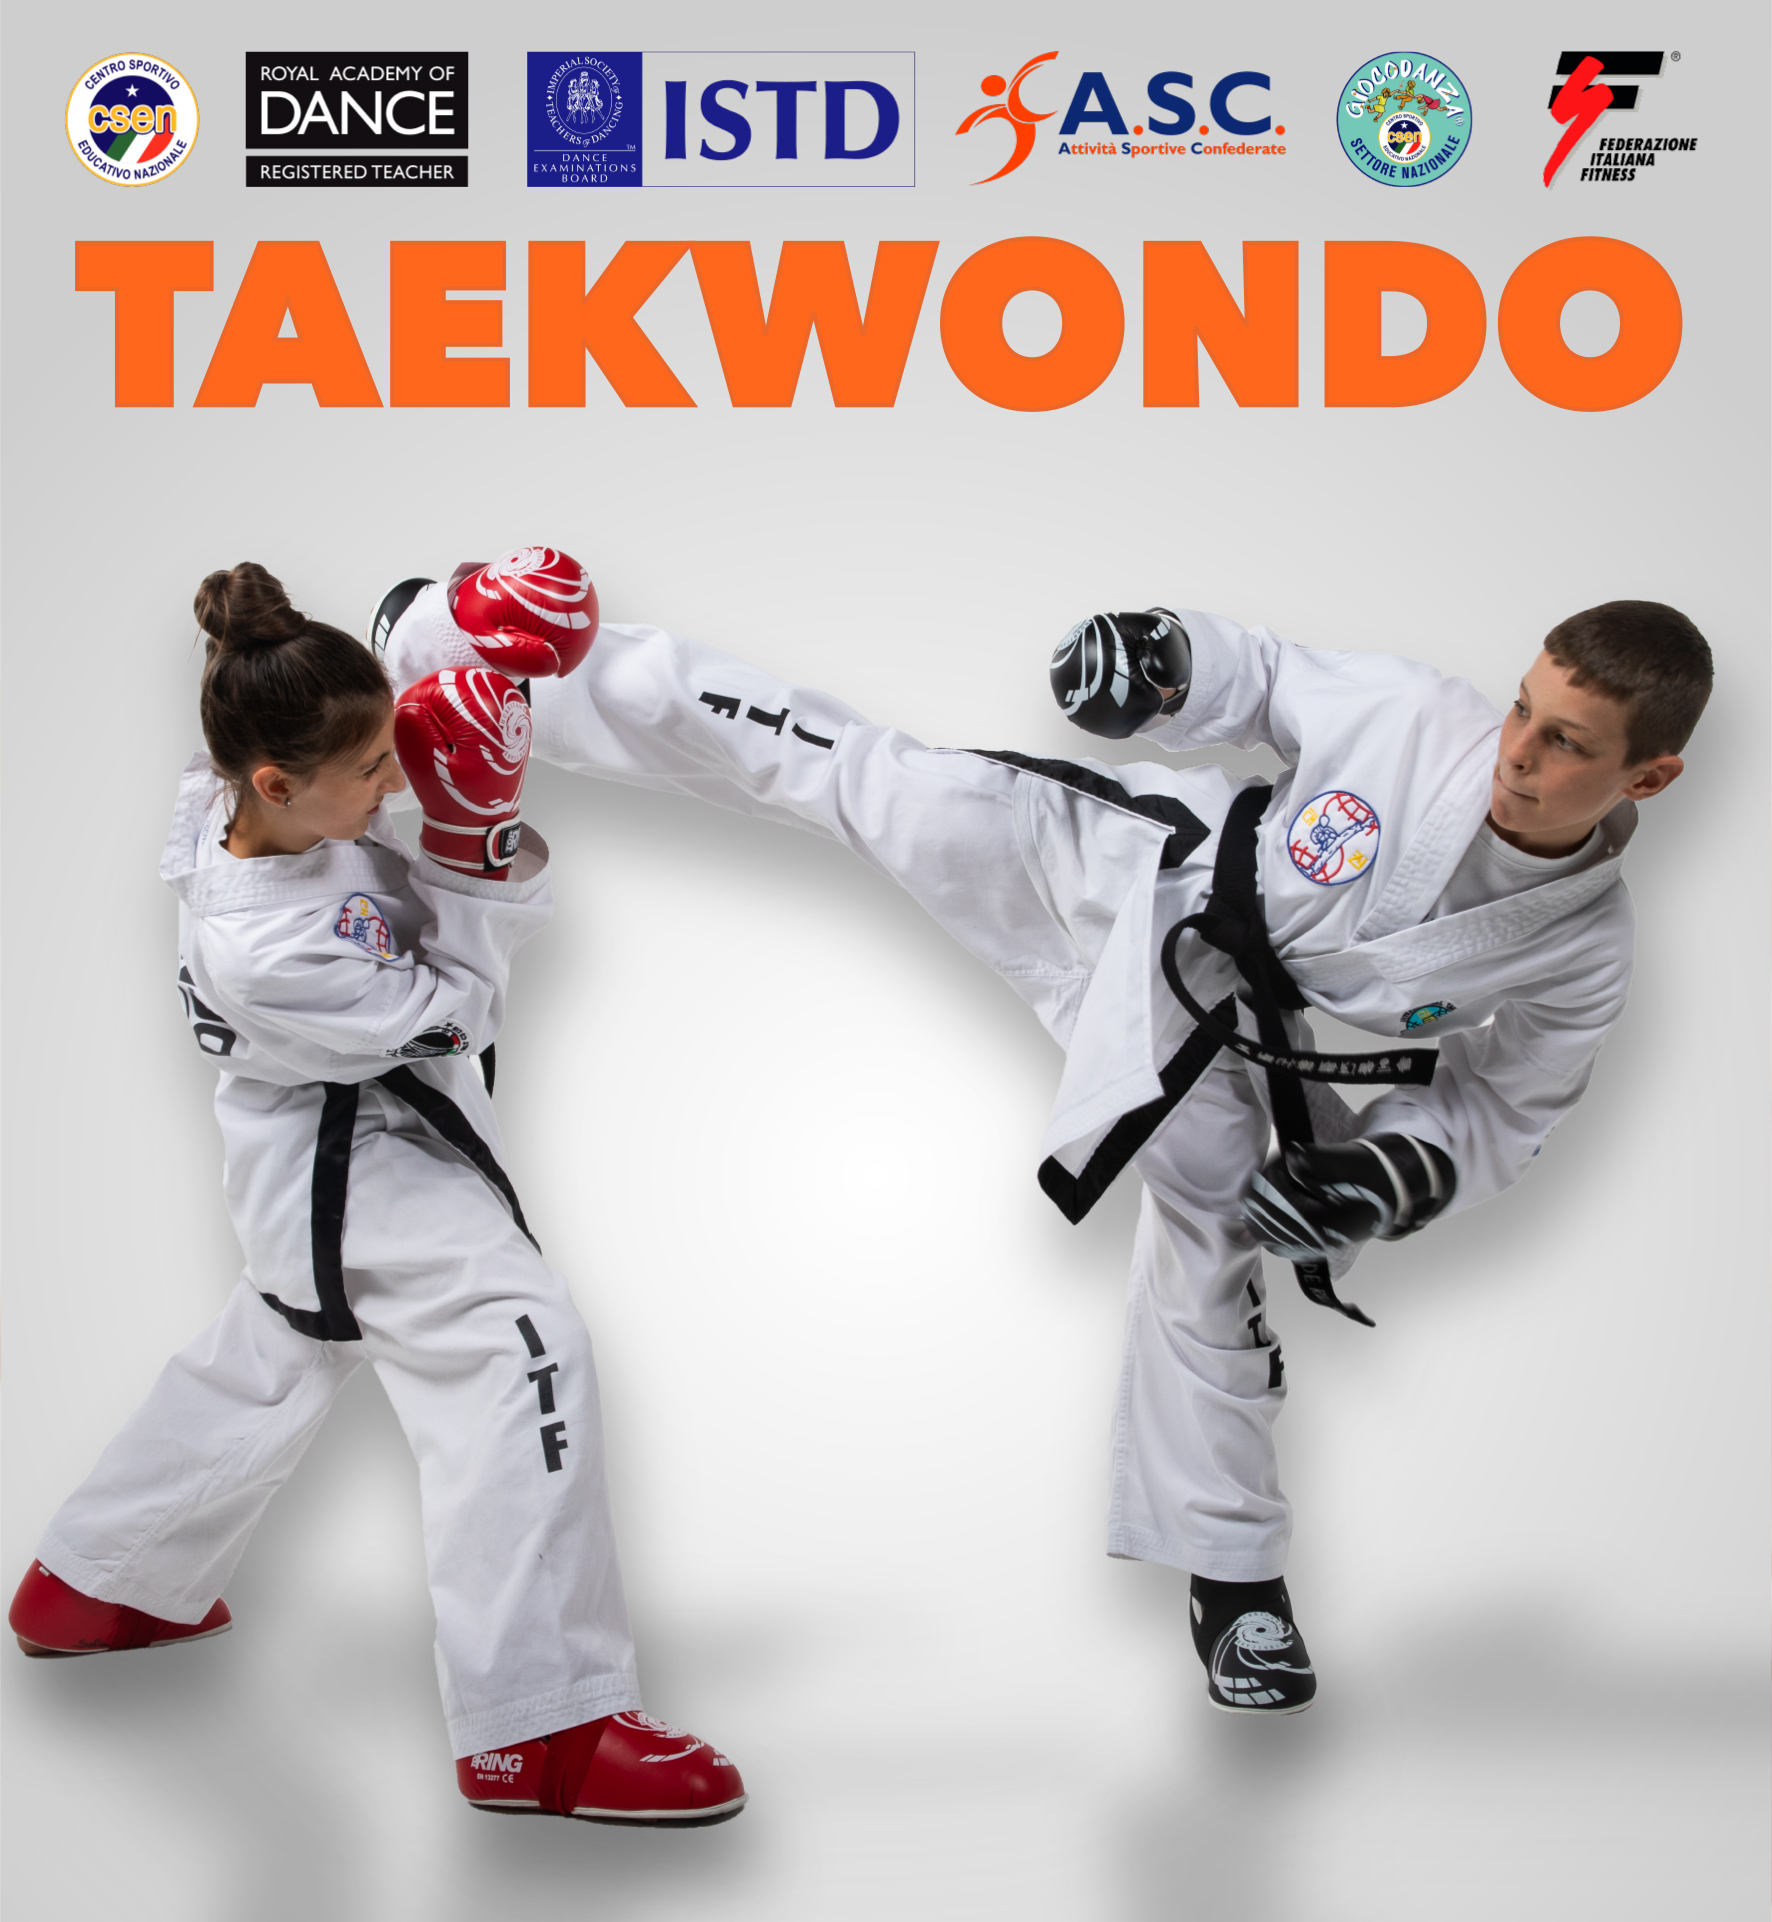 Corsi di Taekwondo a School of Art® Verona